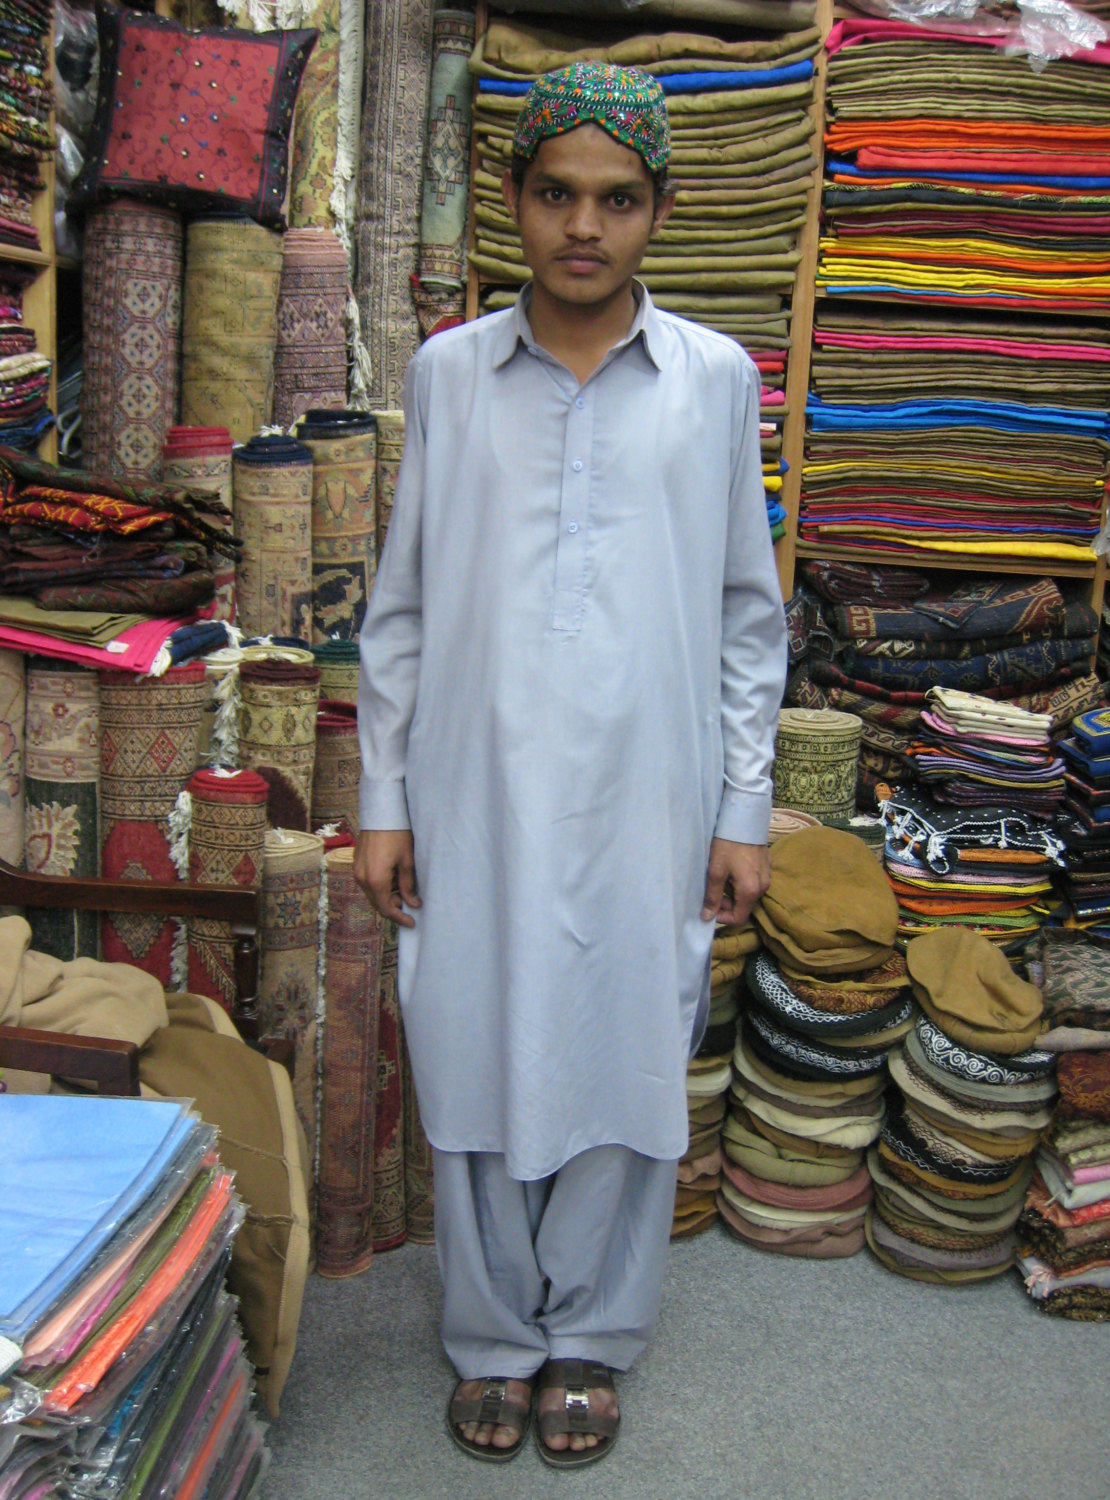 SALWAR SHALWAR KAMEEZ male pakistani afghan pure cotton mens ethnic suit desi in